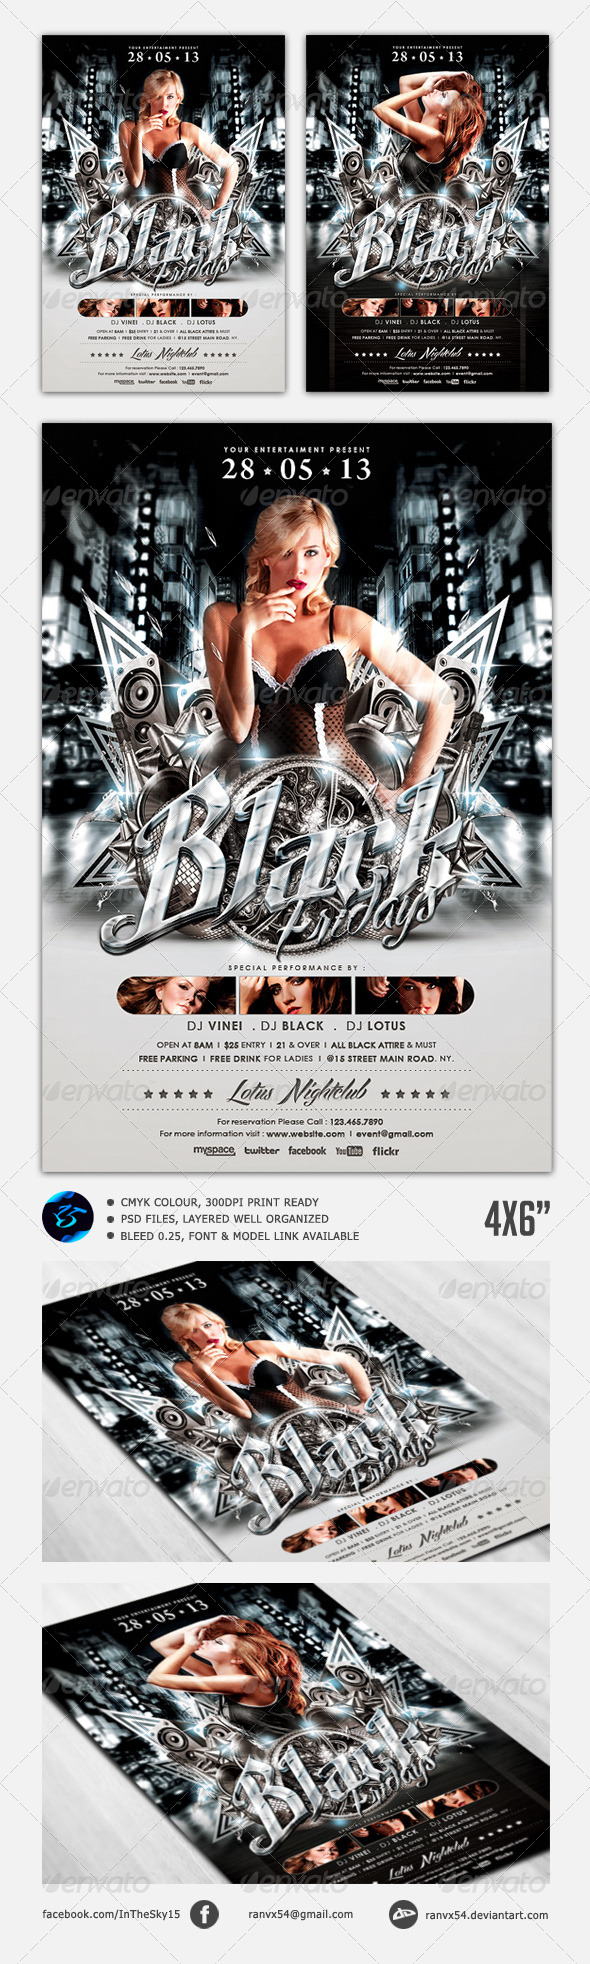 Black Fridays Flyer Template - Clubs & Parties Events